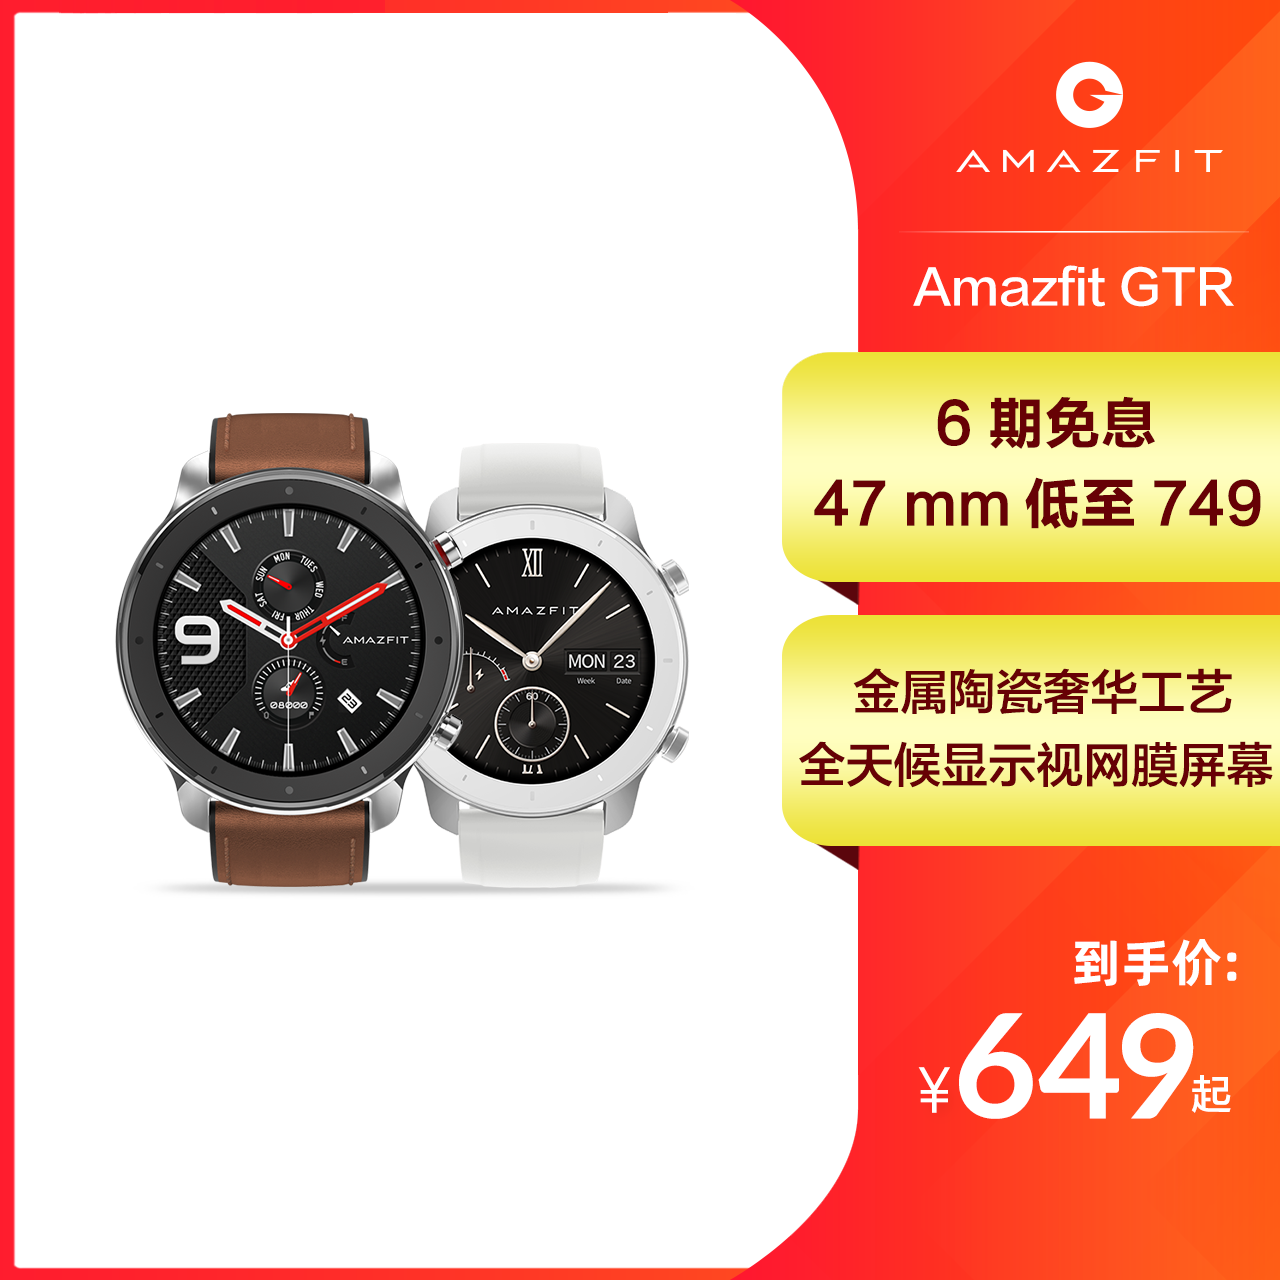 (Ro Yonghao Live Recommendation) Amazfit GTR Smartwatch Huami GPS positioning running swimming sport healthy waterproof Apple Android Pay men's and women's heart rate bracelet watch.